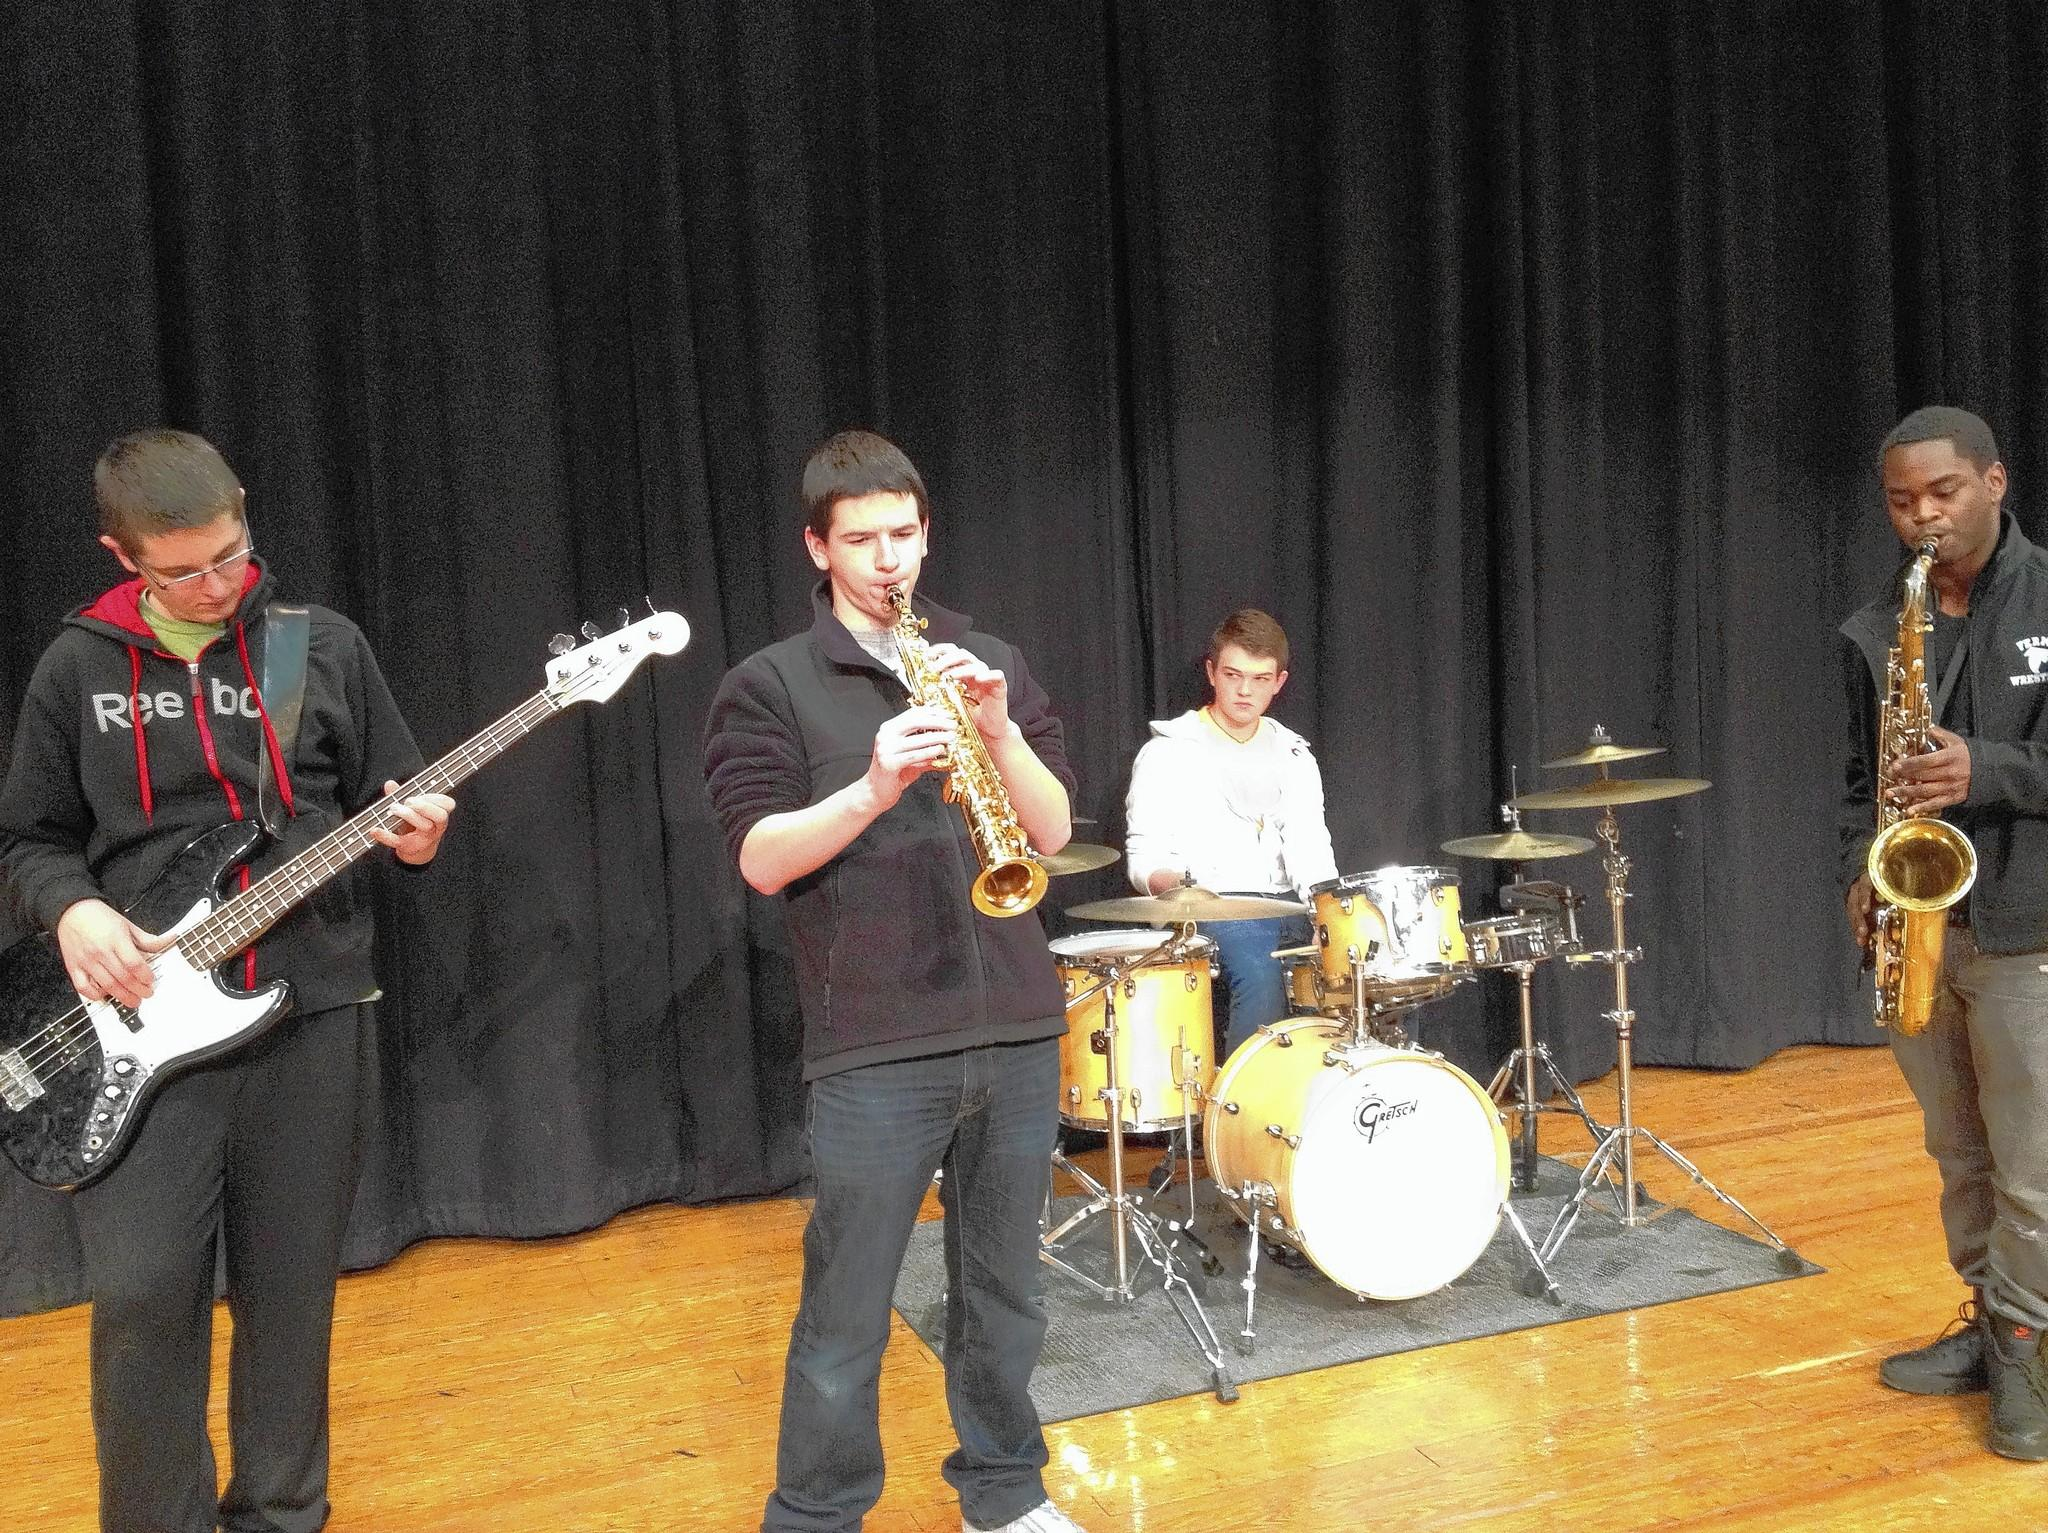 Enrico Fermi High School students Jack Duga, Nick Ryder, Josh Jamison and Courtland Huckabee are all part of Fermi's jazz component. Here they practice together for a talent show at the school.